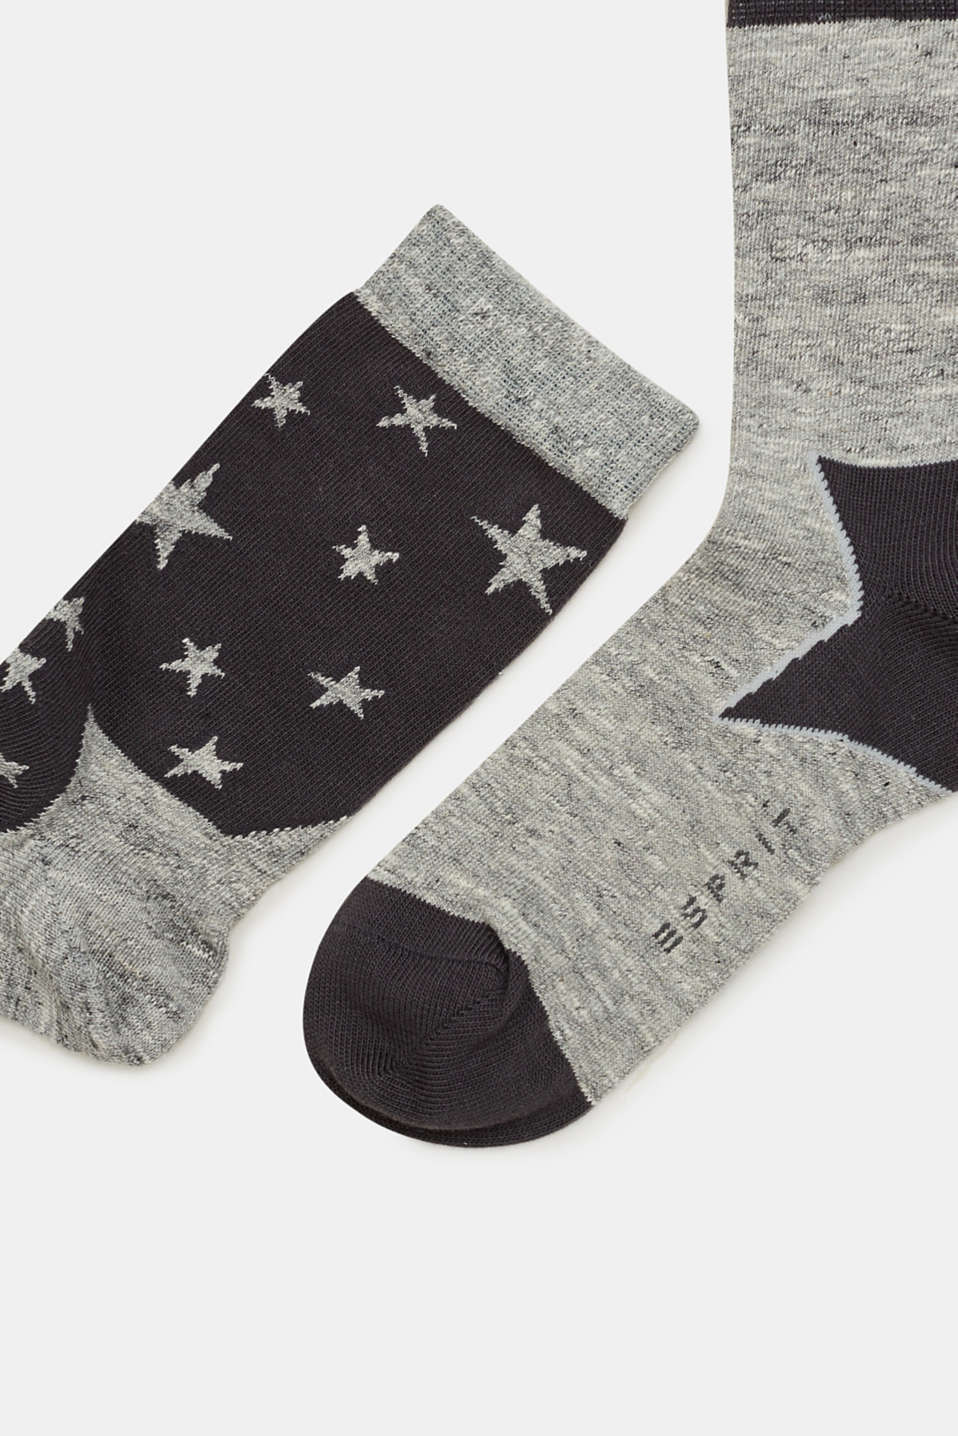 In a pack of two: melange socks with a star intarsia pattern